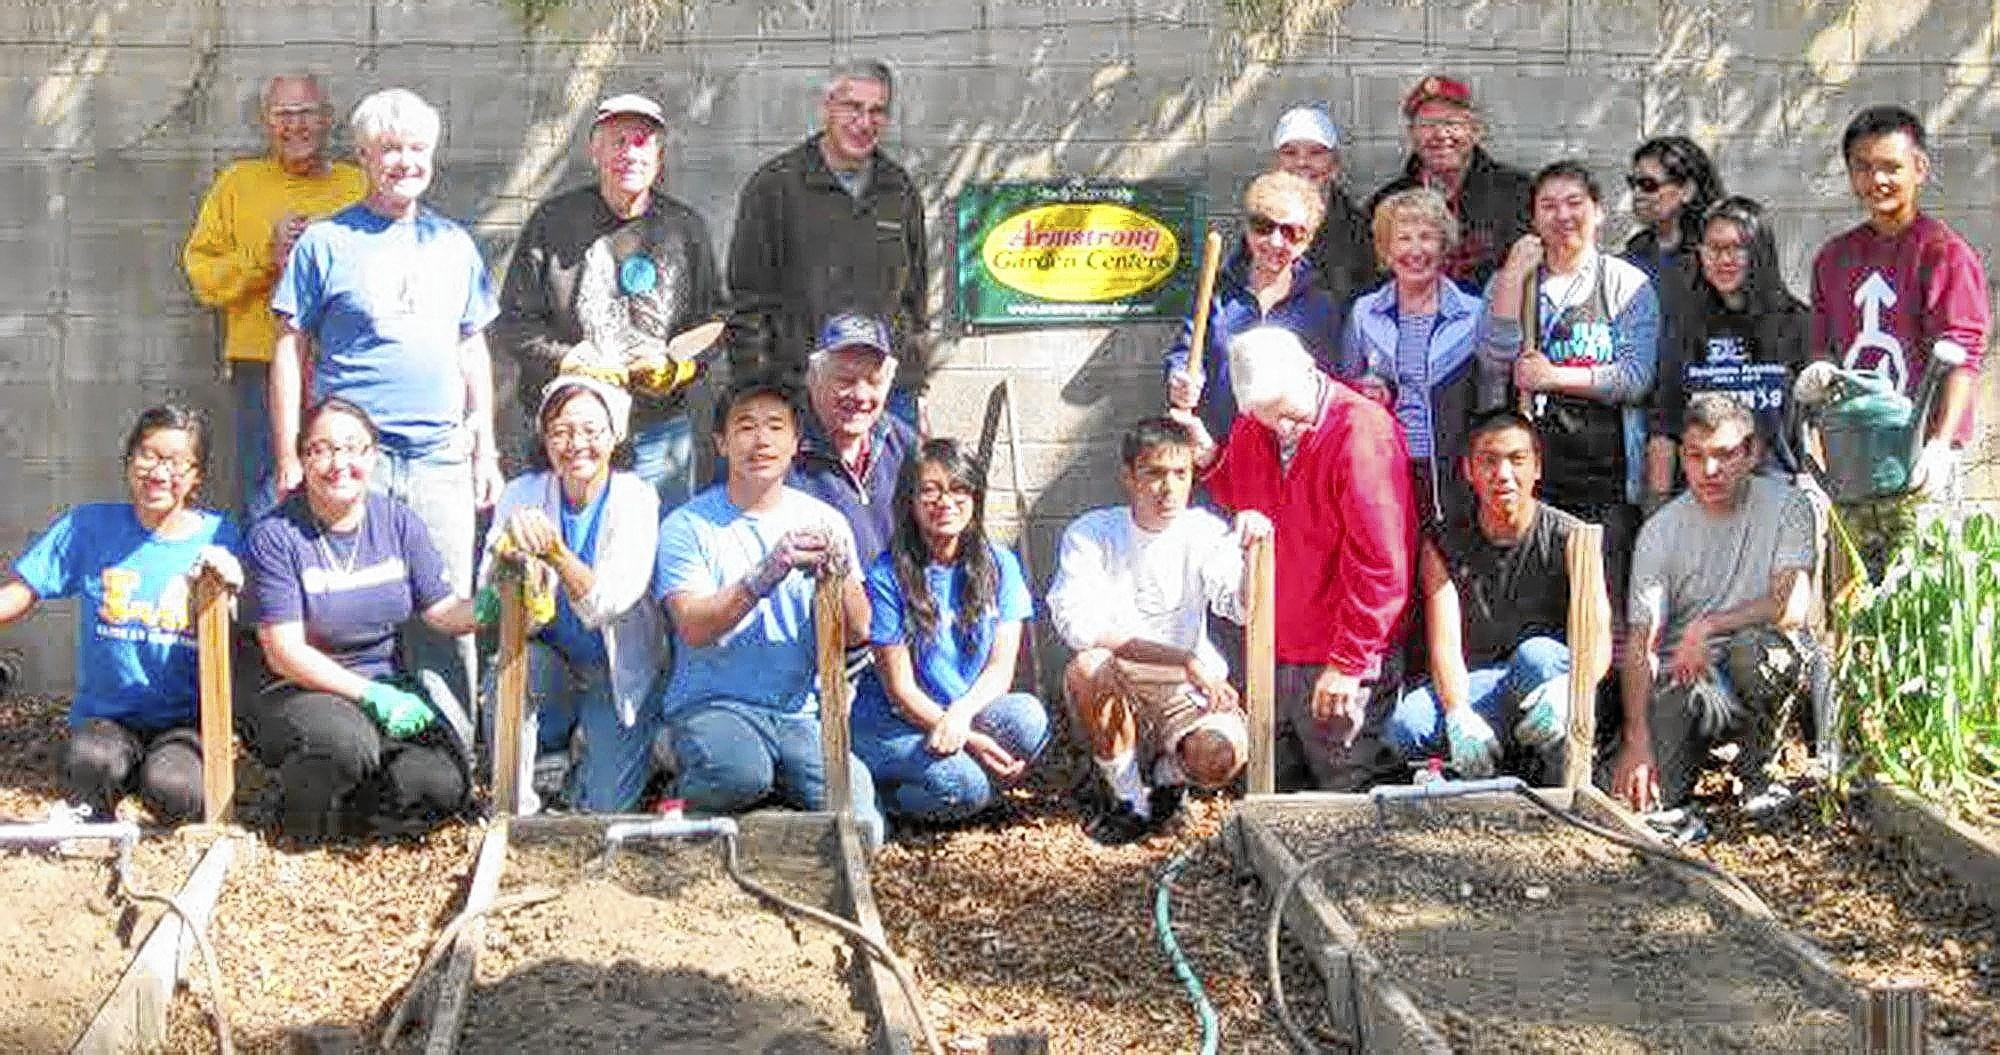 The La Cañada Kiwanis AM club participated in the Kiwanis One Day project with the Franklin High School K Club at the Lanterman House garden. Front row, from left, Krissy Wong, Arlene Anguiano, Elaine Harada, Franklin High School math teacher and K Club sponsor; Denis Tran, Mark Femandez, Jack Labrie, Elijah Trinidad and Brian Sanchez. Second row, from left, are Chuck McGee, Sean Crahan, David Hemstreet, Donn Sarbaum, Marie Hyland, Joan McGee, K Club President Jade Archuleta, Winny Chen and Jeffrey Fernandez. Back row, from left, Barbie Eland, Kiwanis AM president elect, President Joe Thompson and Mary Ann Ralser.